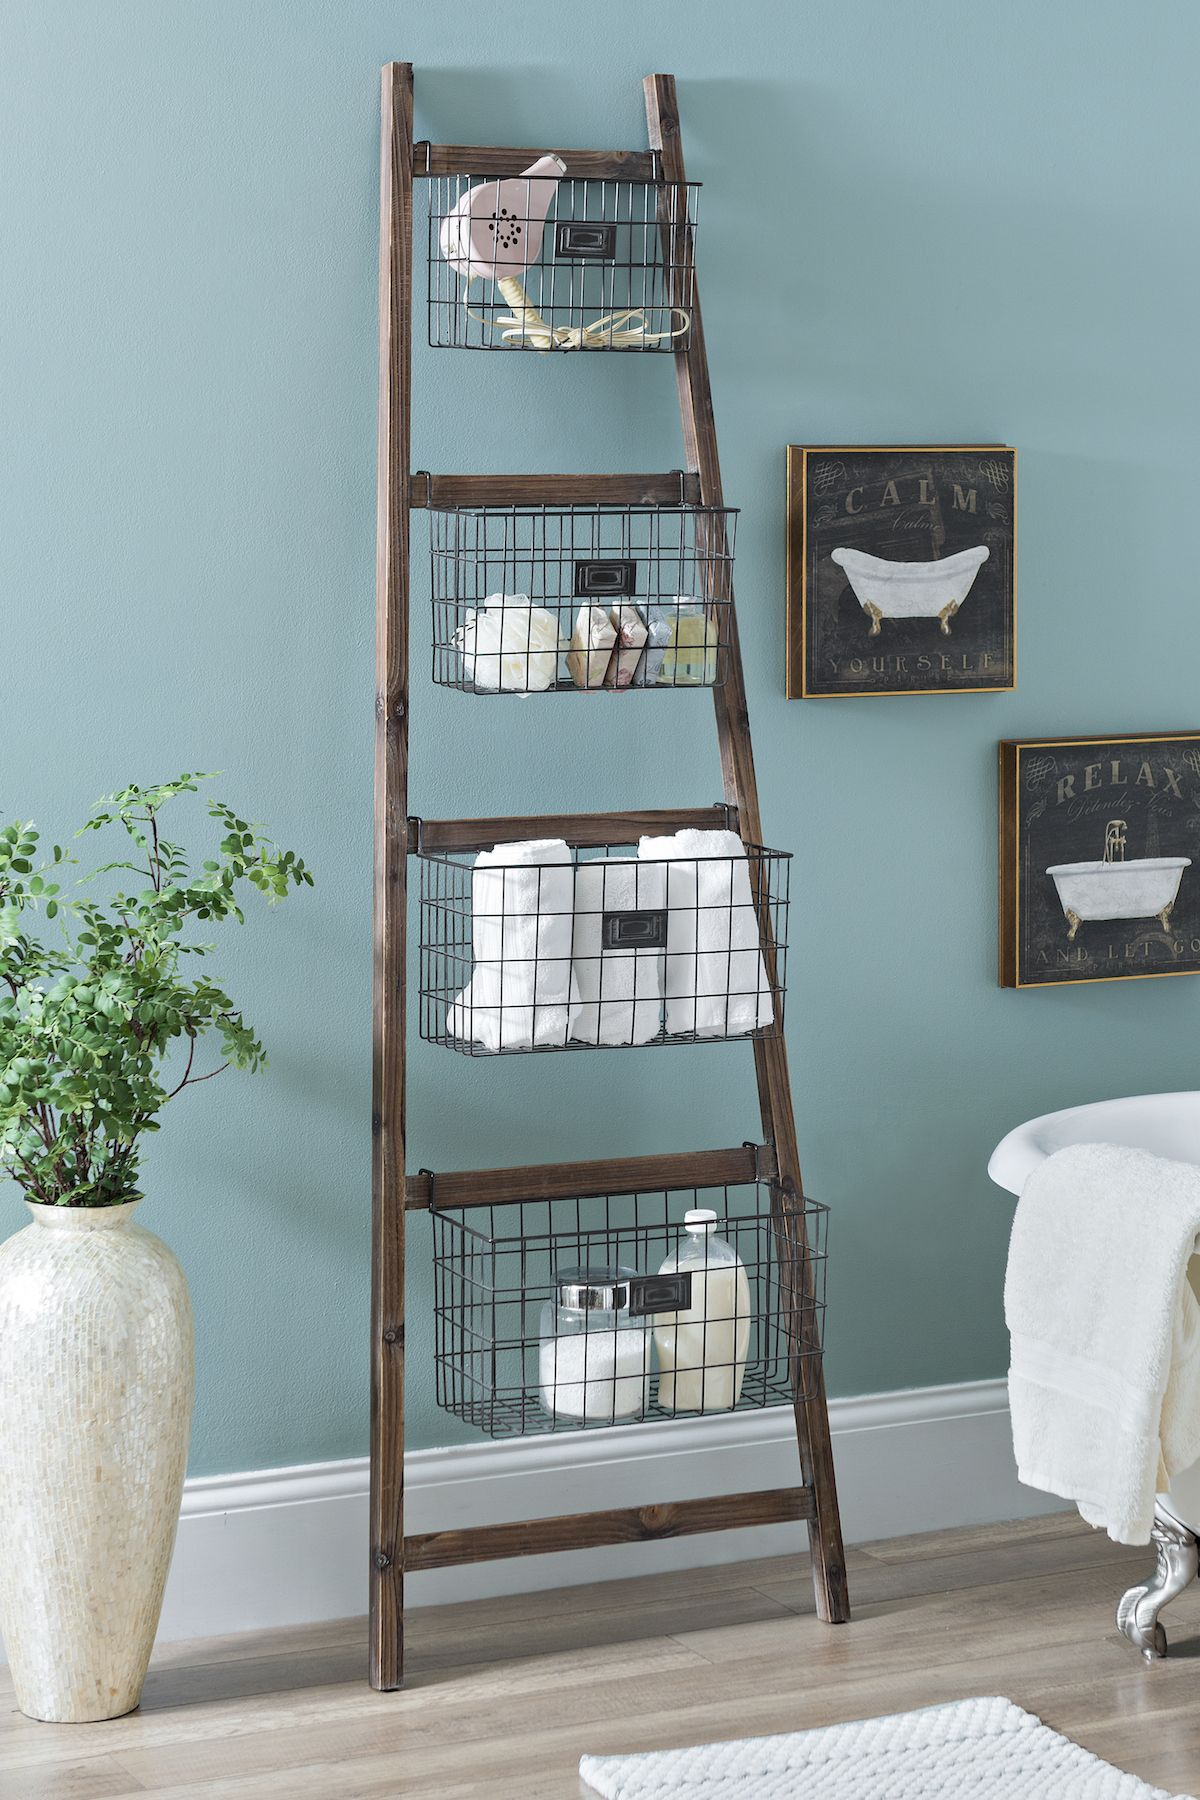 Tapered Wooden Ladder Basket Shelf | Ladder storage, Storage and House